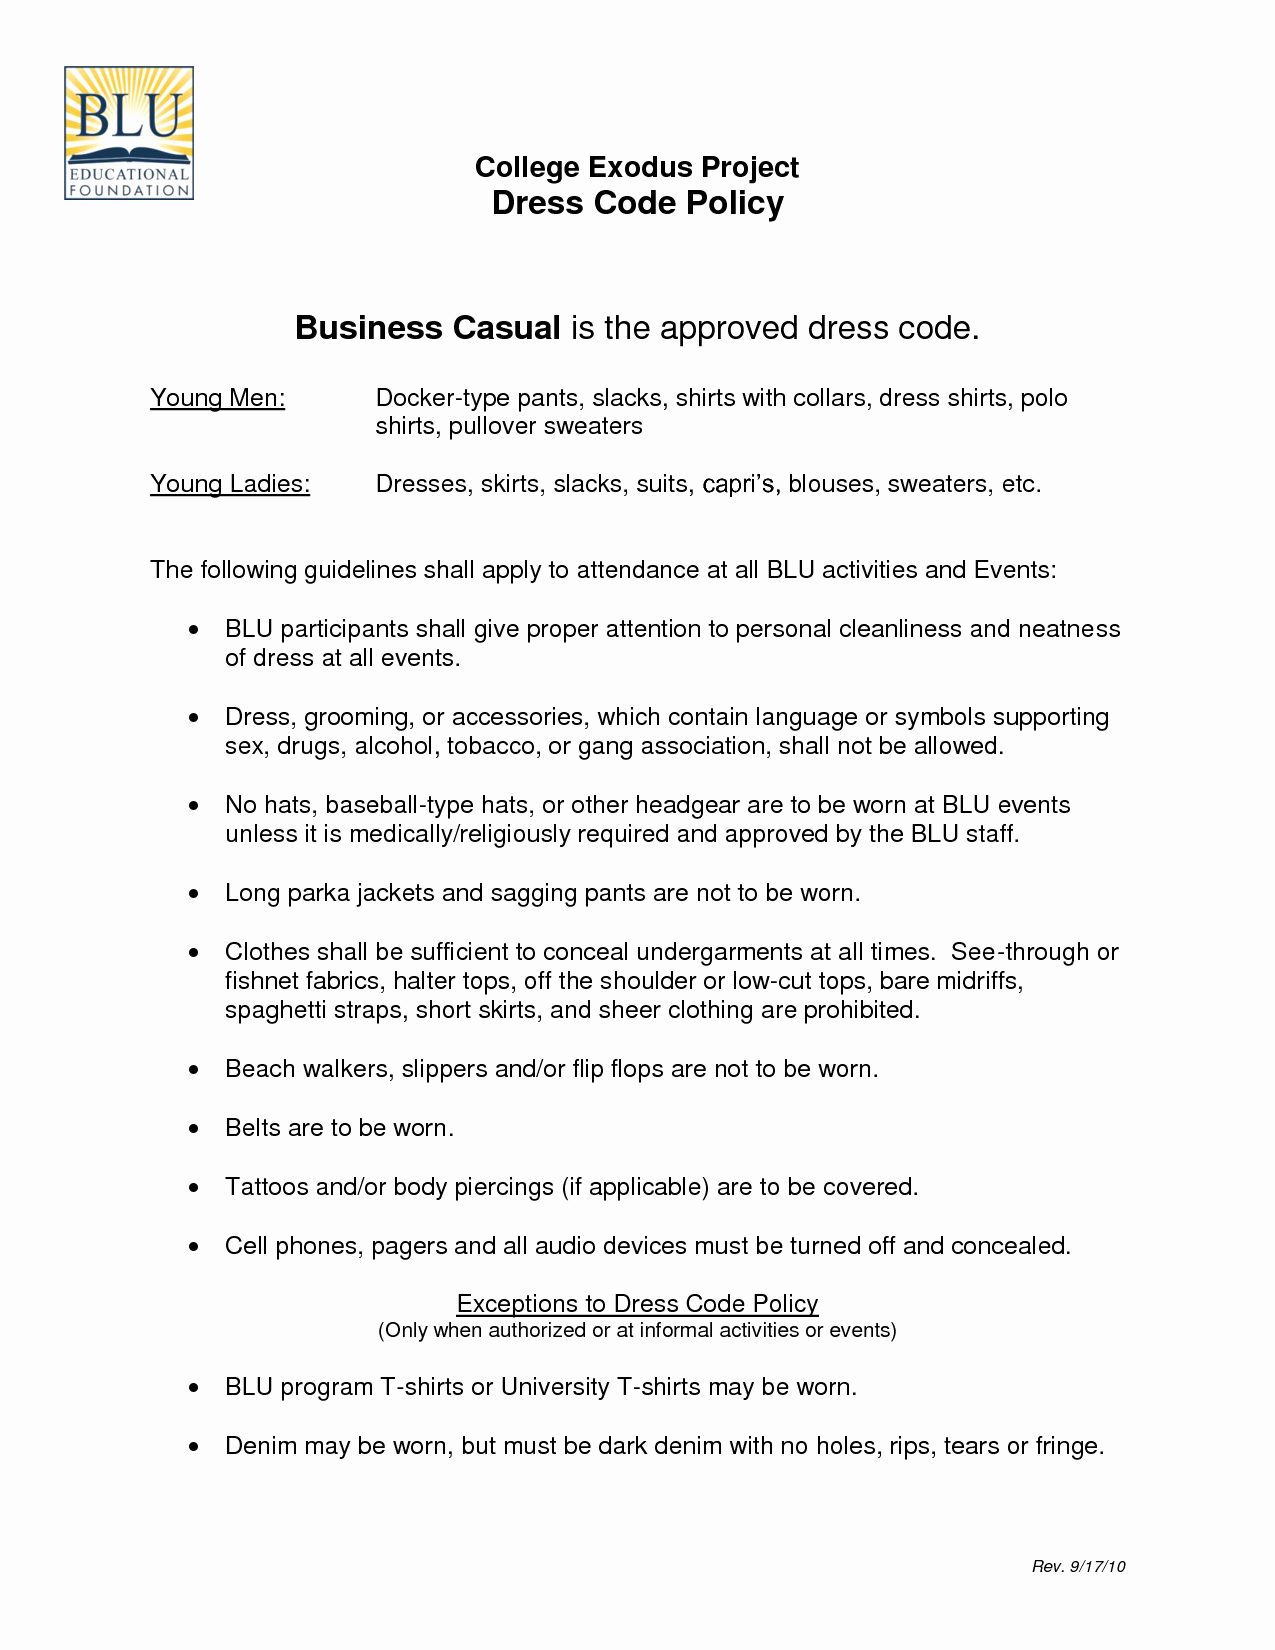 business dress code policy